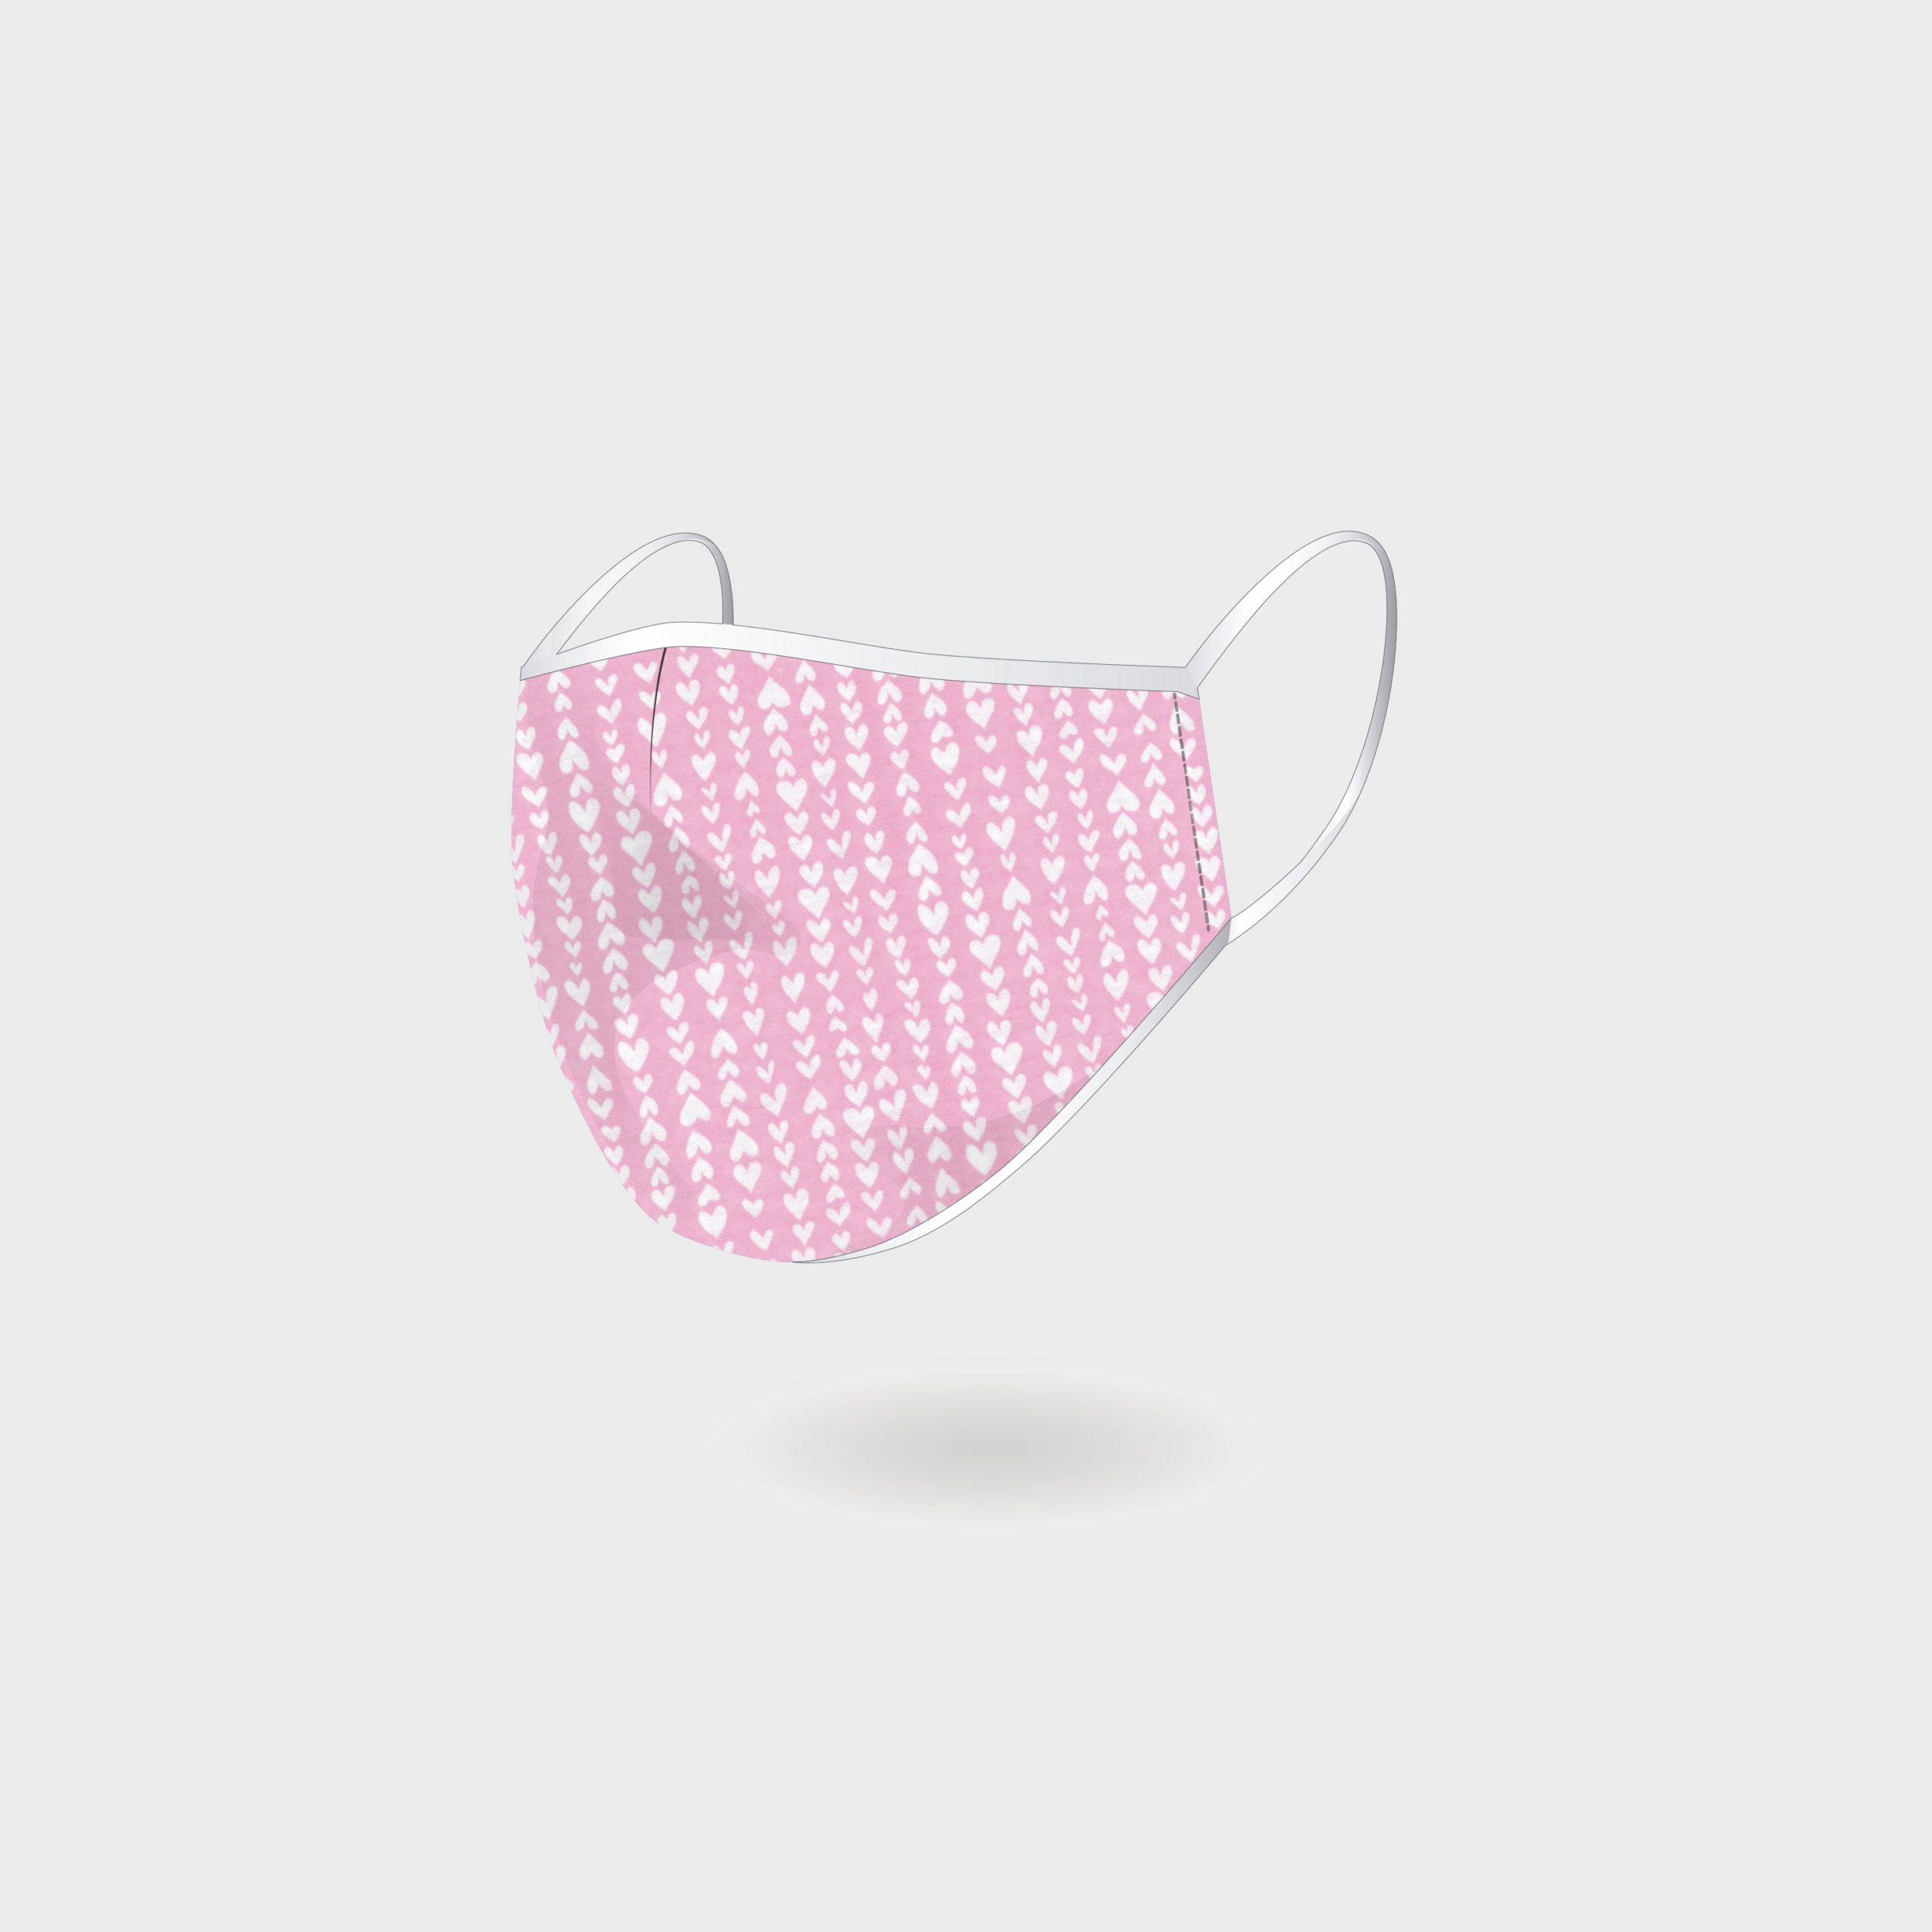 KIDS MASK PINK HEART